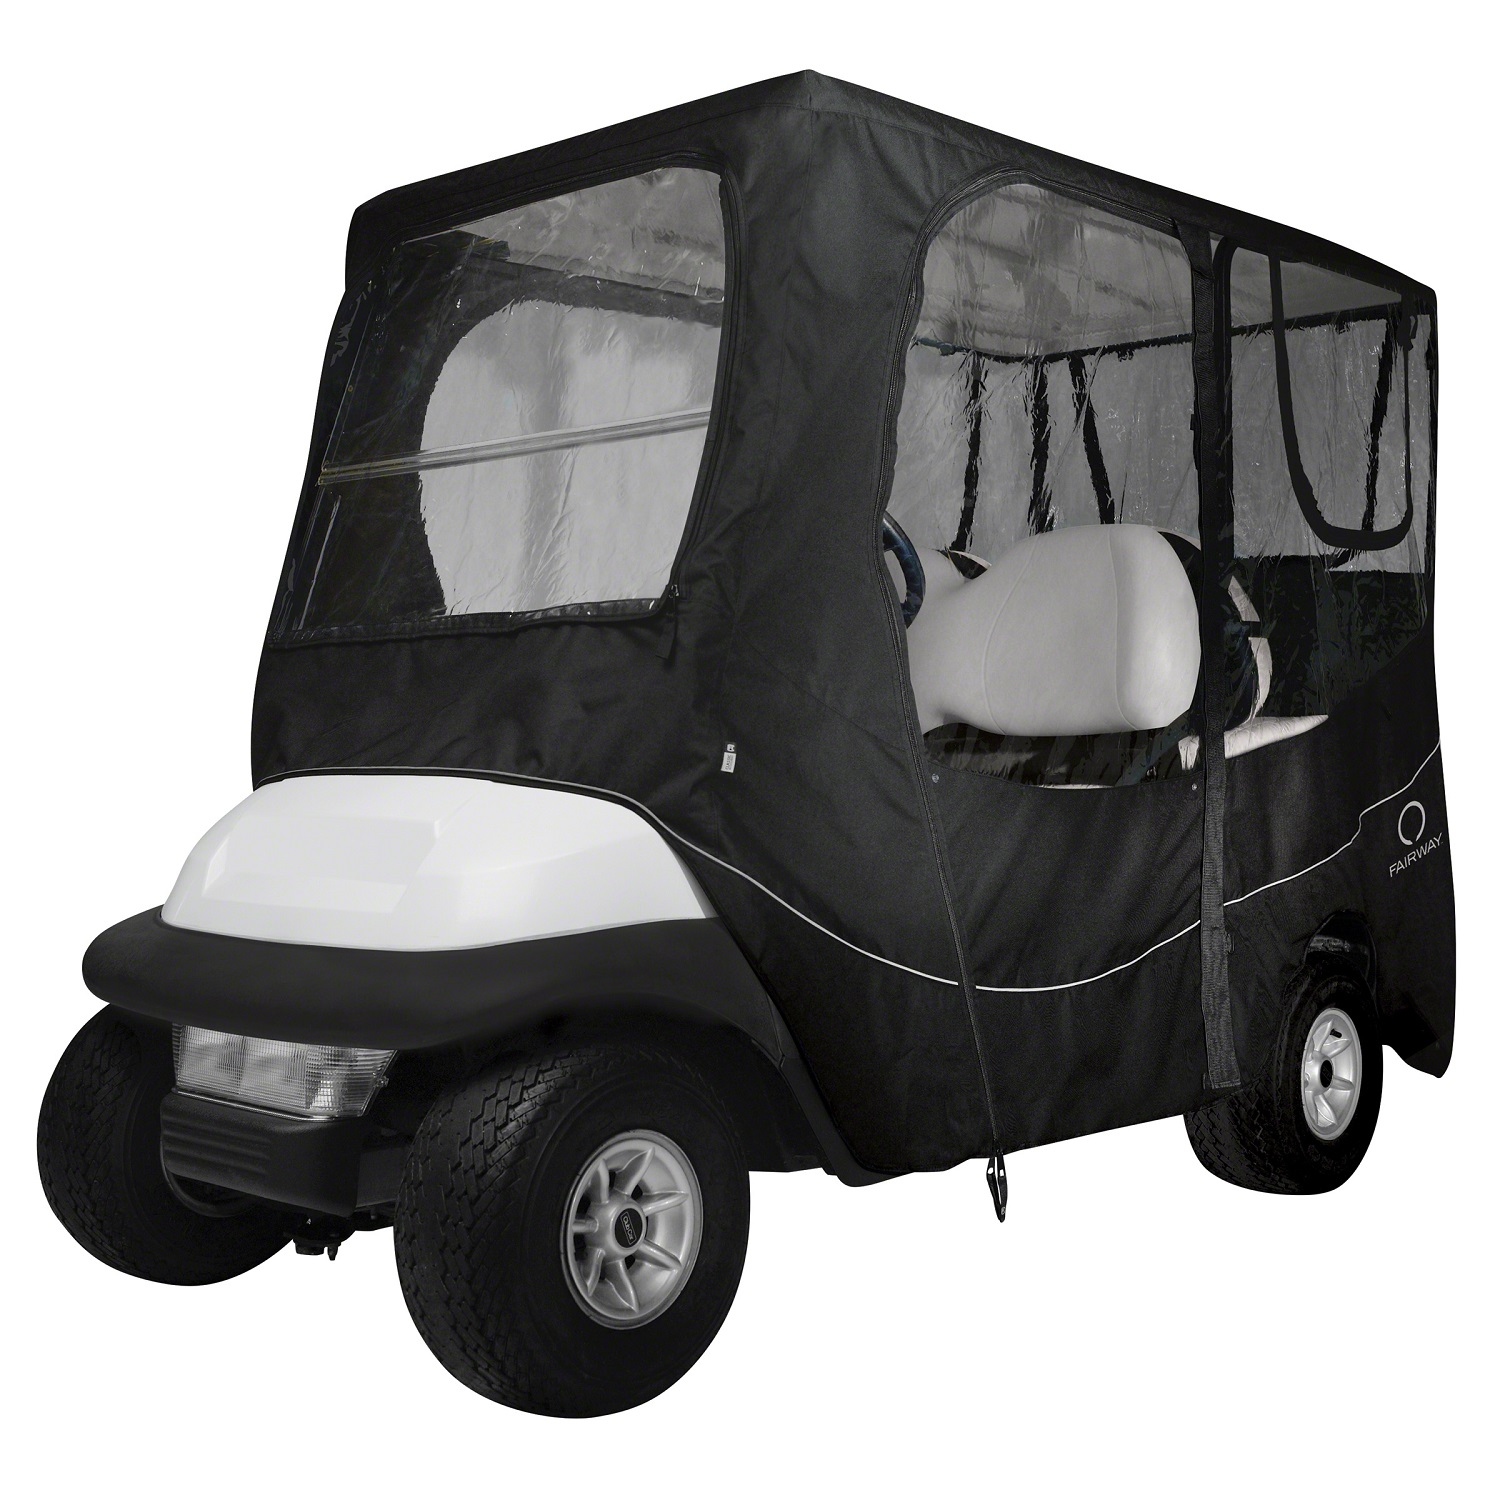 Fairway Golf Cart Deluxe Enclosure Long Roof - Black